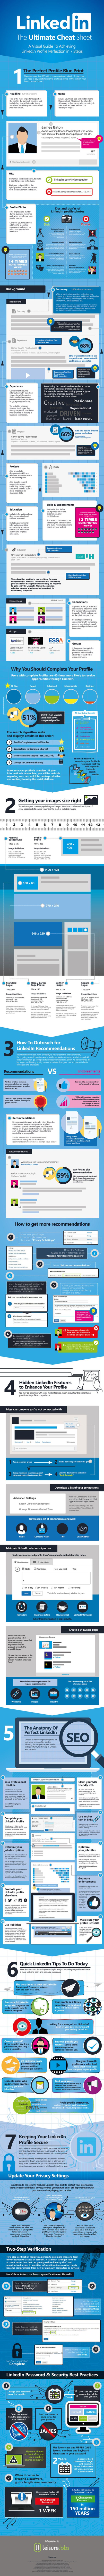 Advertising-Infographics-Personal-Branding-on-LinkedIn-7-Steps-to-LinkedIn-Profile-Perfection Advertising Infographics : Personal Branding on LinkedIn 7 Steps to LinkedIn Profile Perfection